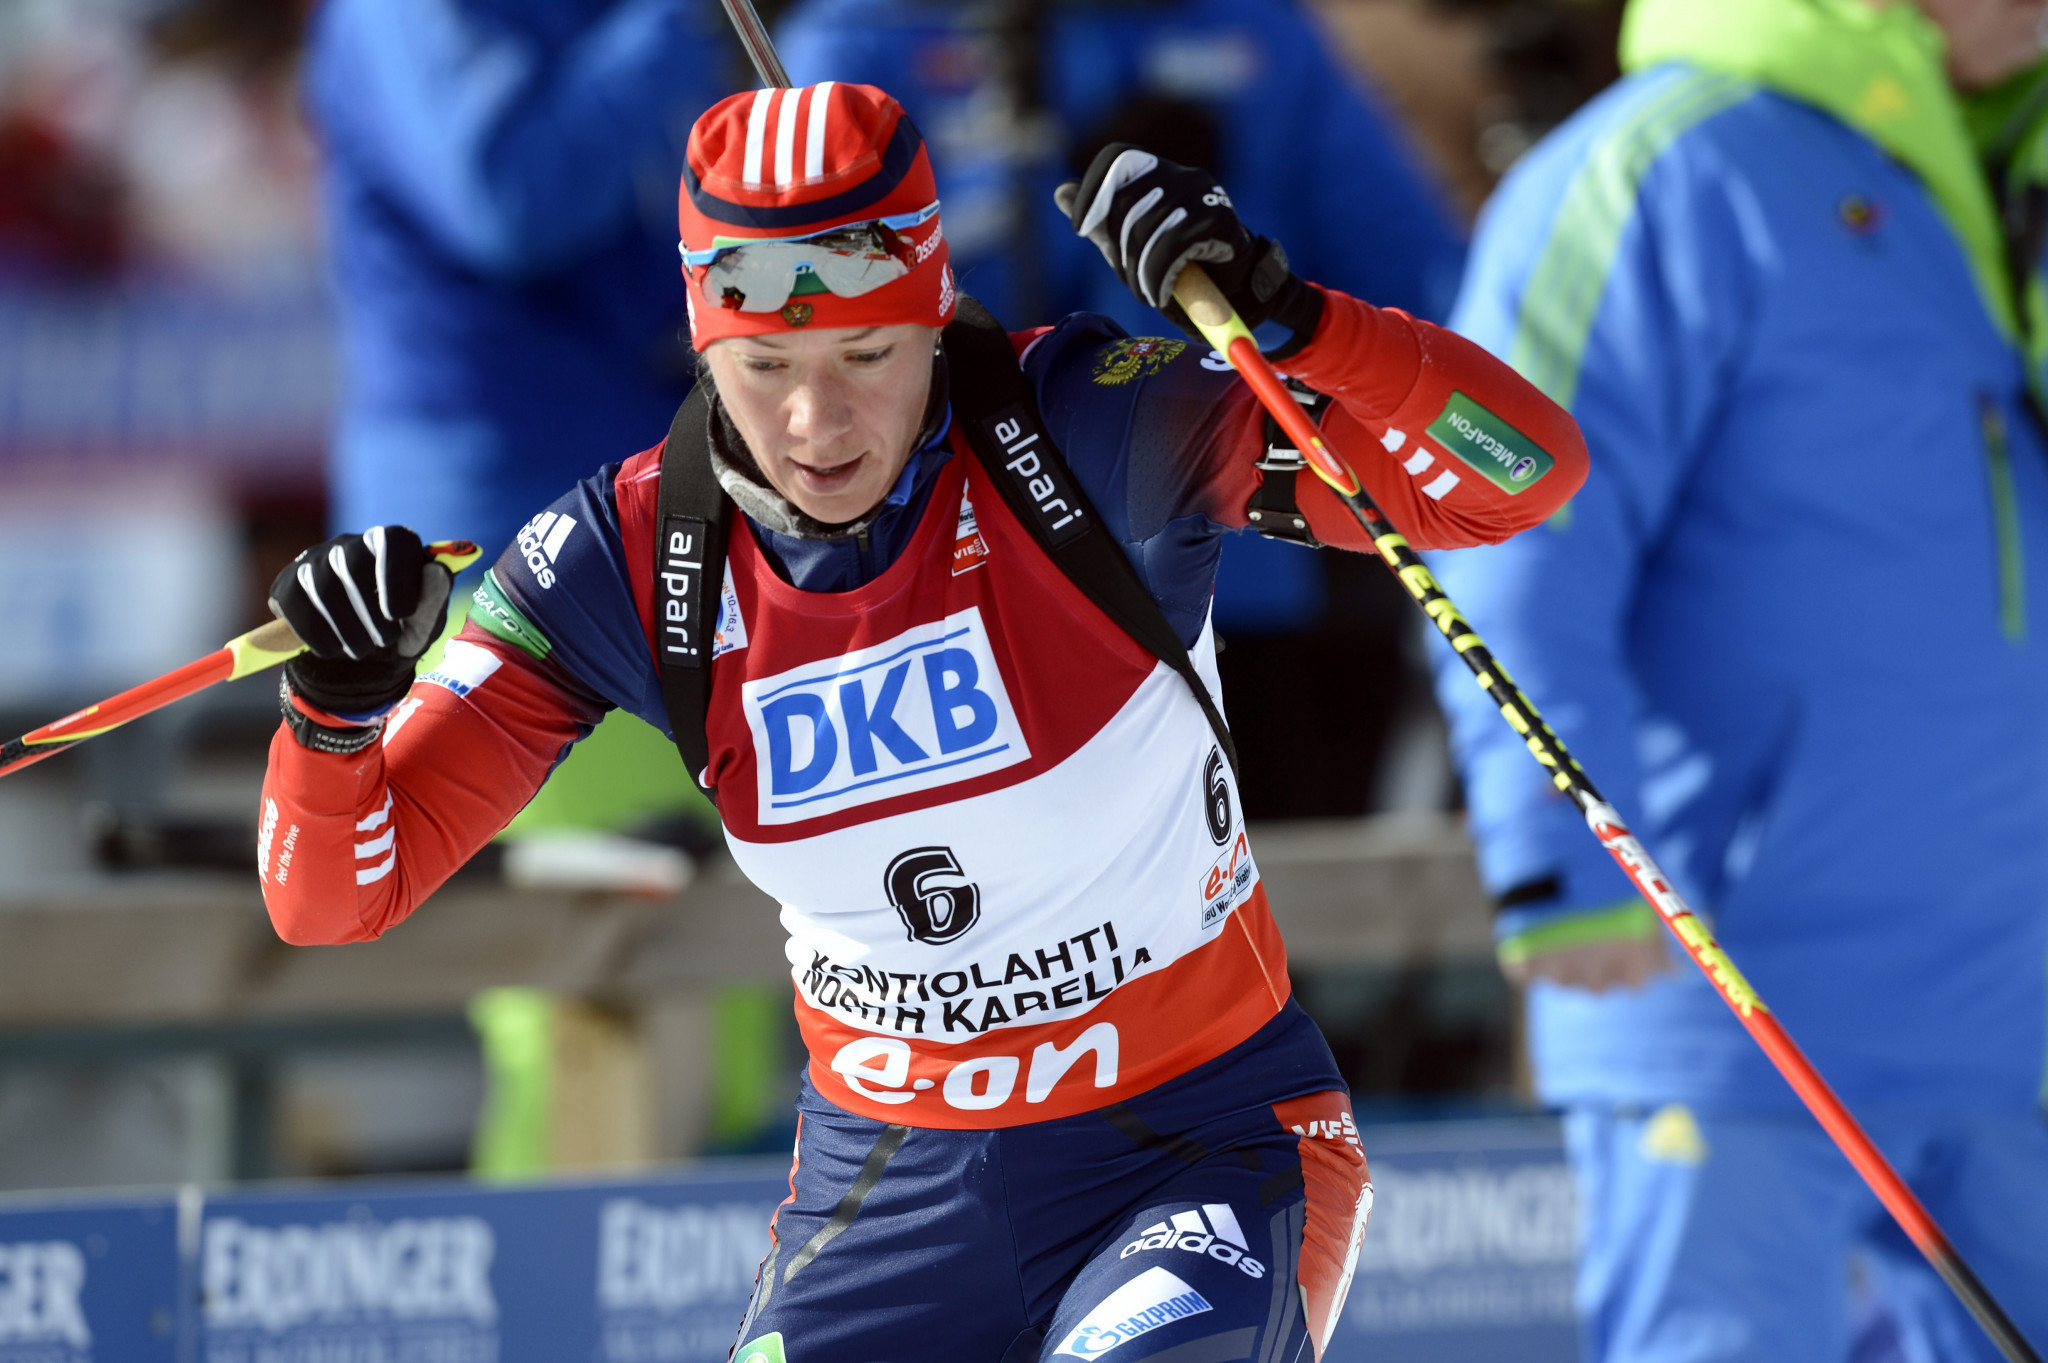 Olga Zaitseva is also reportedly under investigation by the IOC ©Getty Images